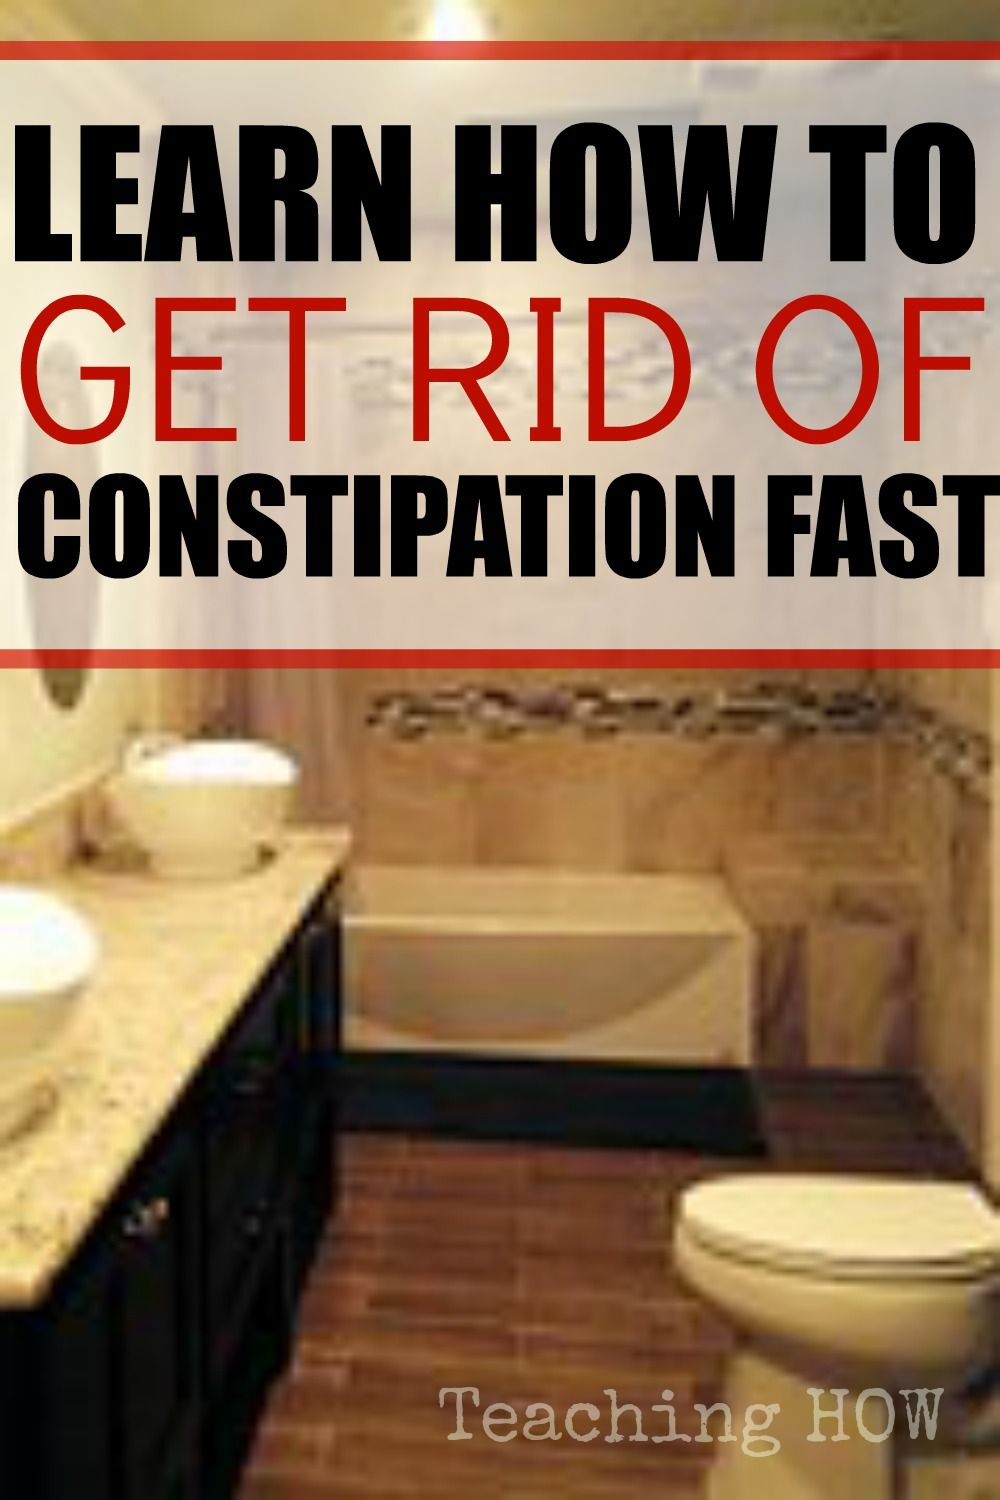 Superieur Learn How To Get Rid Of Constipation Fast   Because For How To Tips   Click  On The Following Link! Http://www.teachinghow.com/how To Get Rid Of Constipation  ...